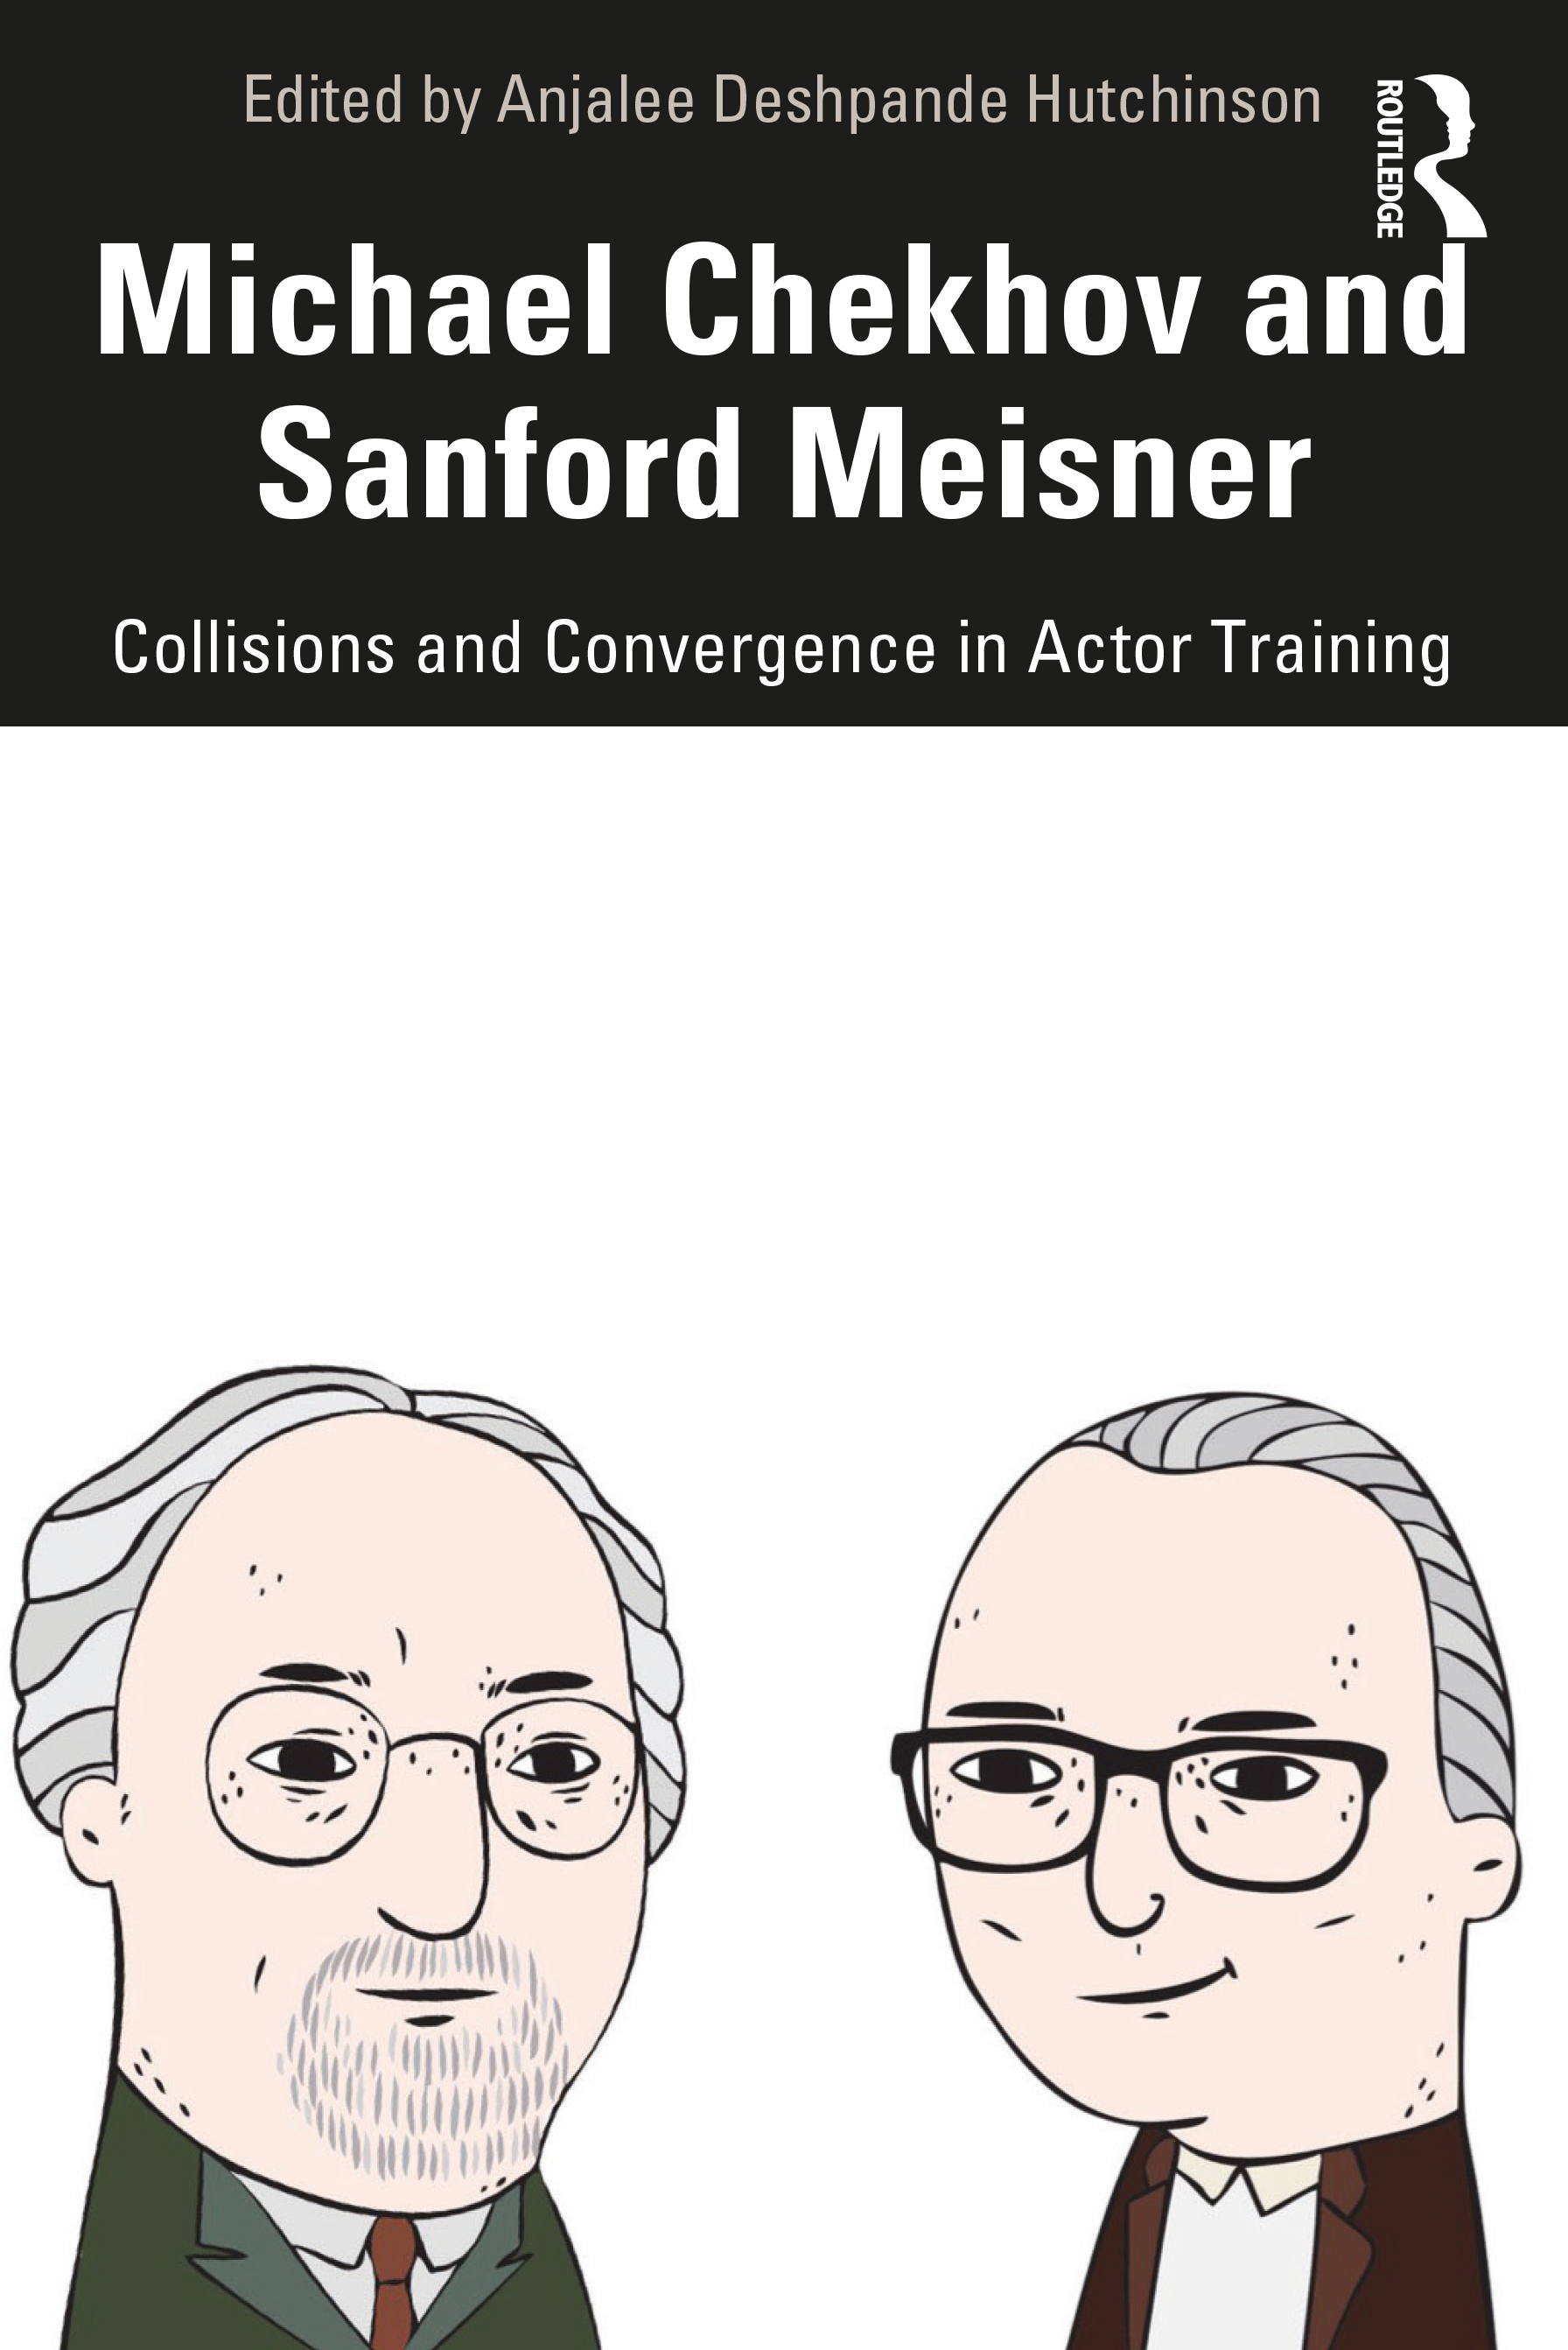 Michael Chekhov and Sanford Meisner